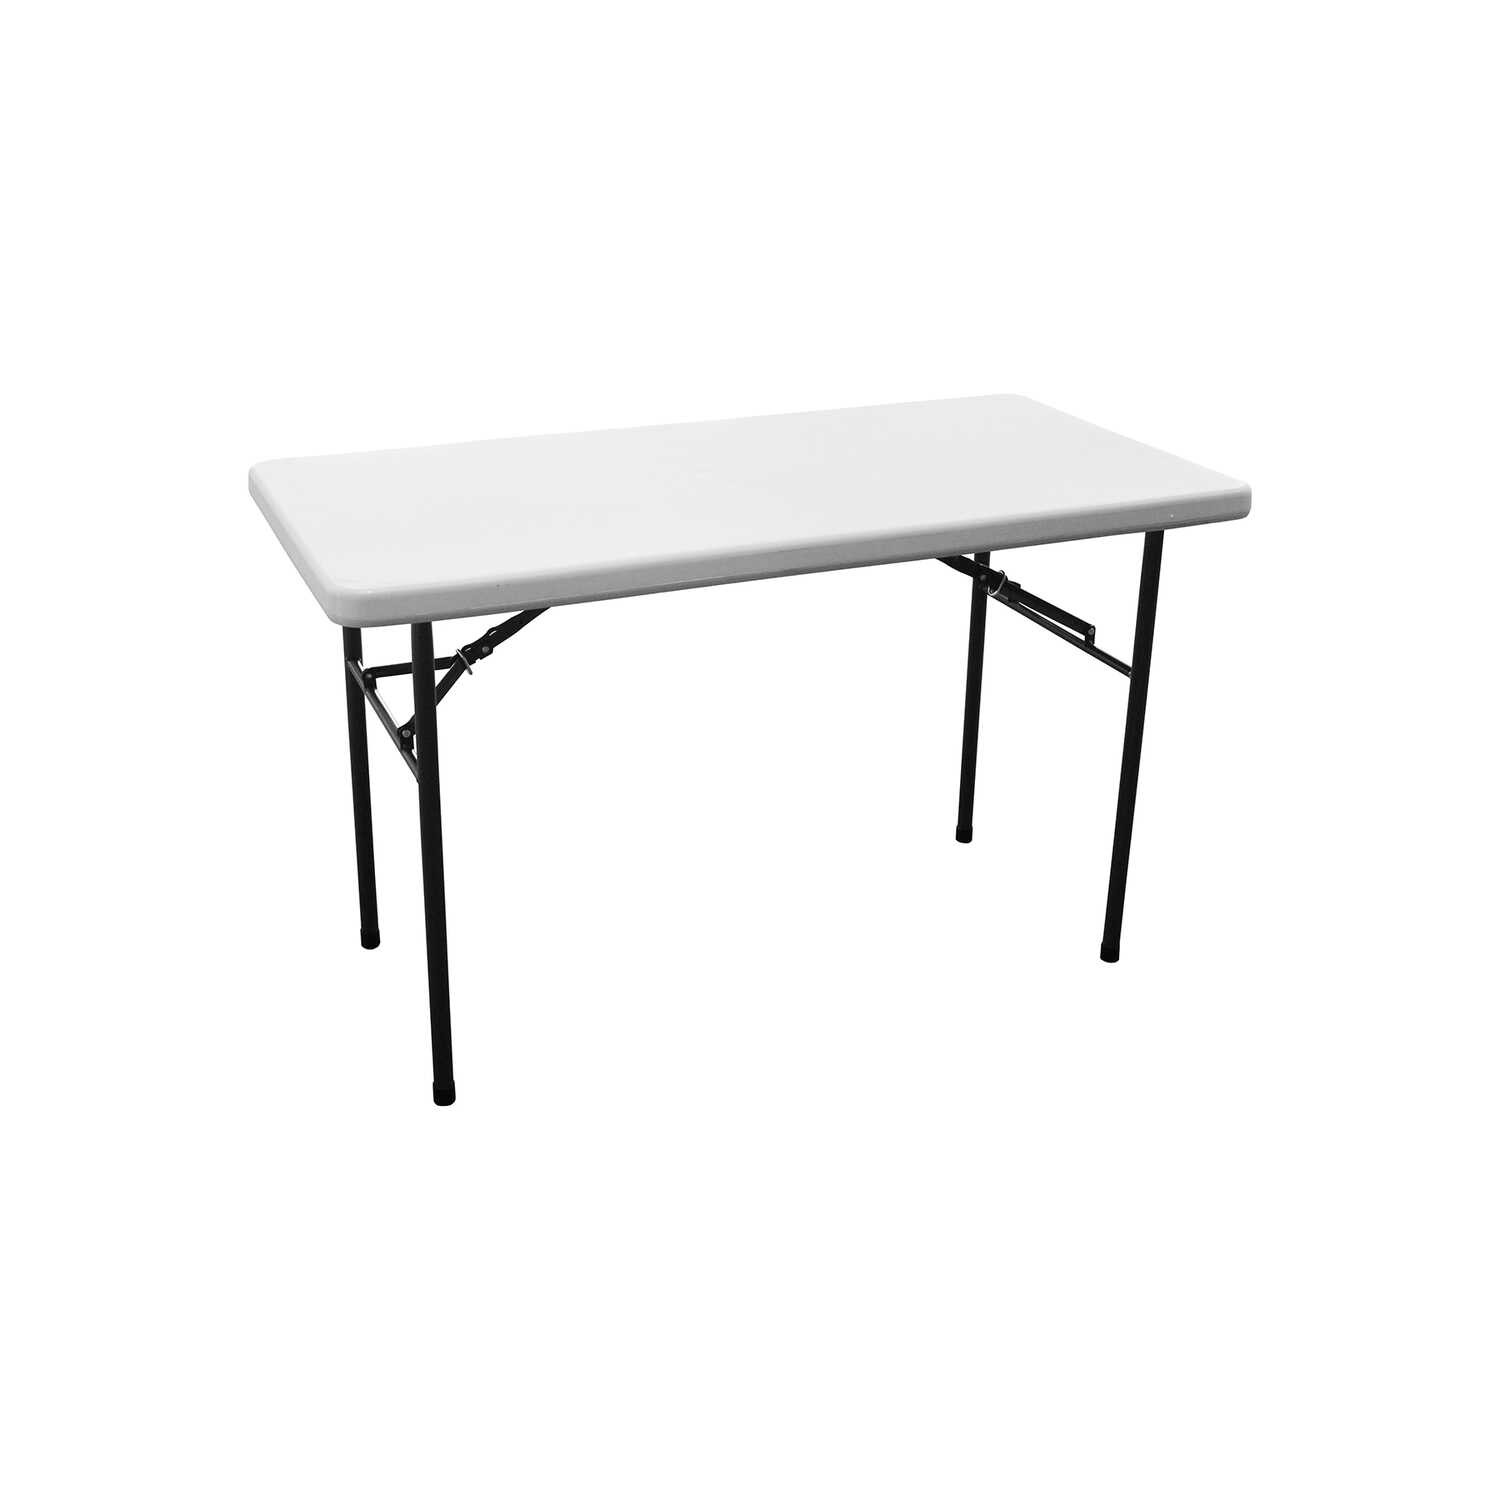 Living Accents  29-1/4  H x 24  W x 48  L Rectangular  Folding Table